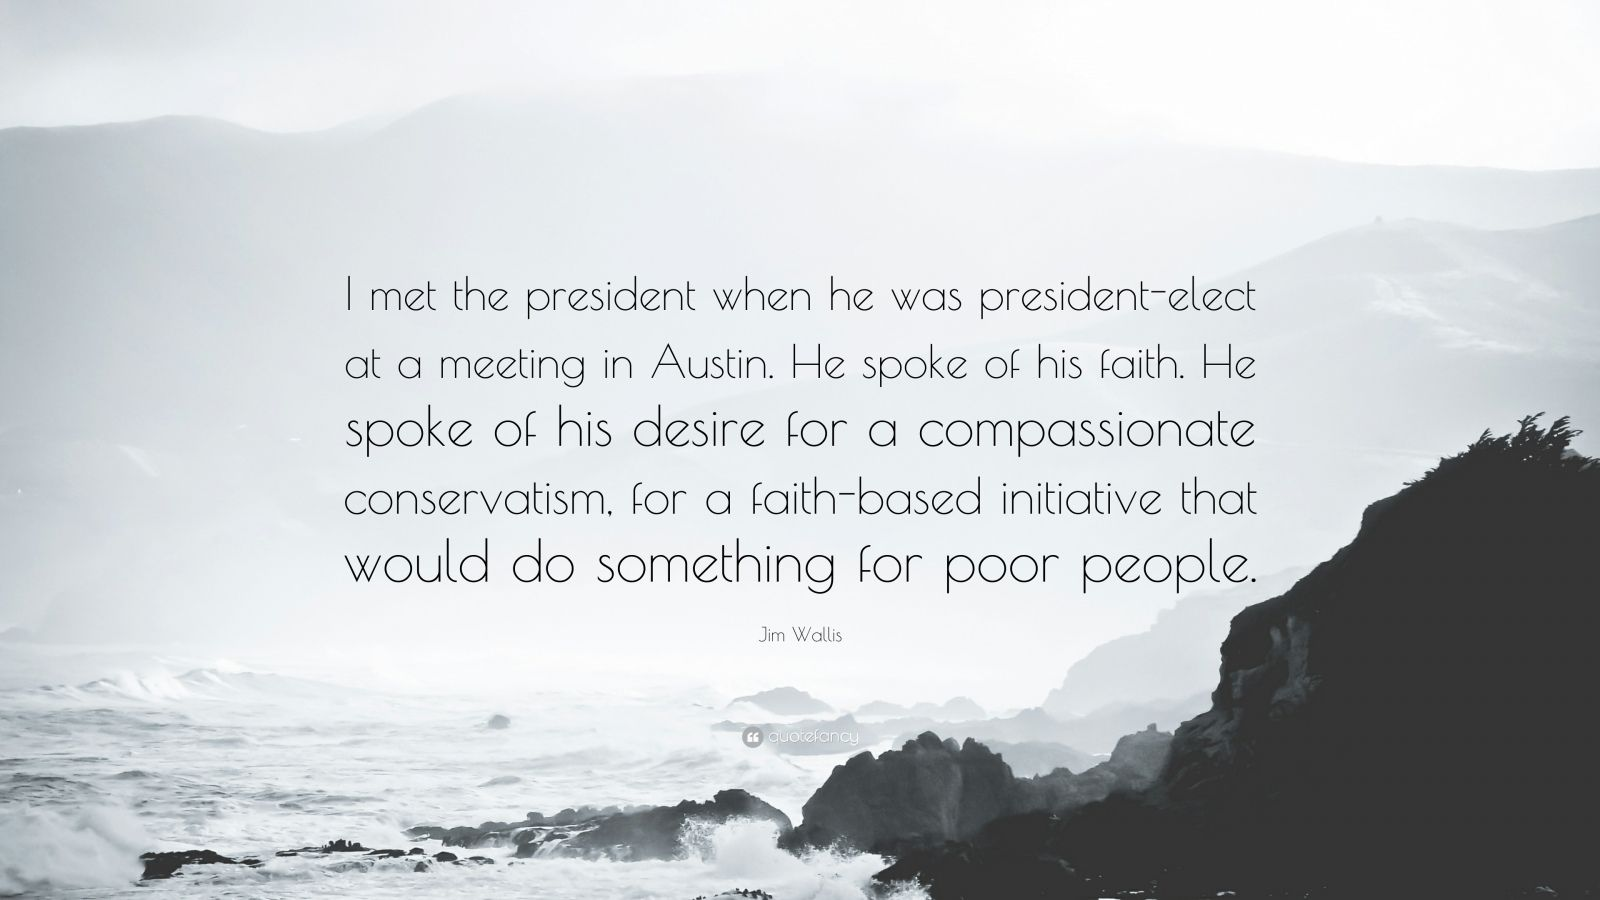 """Jim Wallis Quote: """"I met the president when he was president-elect at a meeting in Austin. He spoke of his faith. He spoke of his desire for a compassionate conservatism, for a faith-based initiative that would do something for poor people."""""""